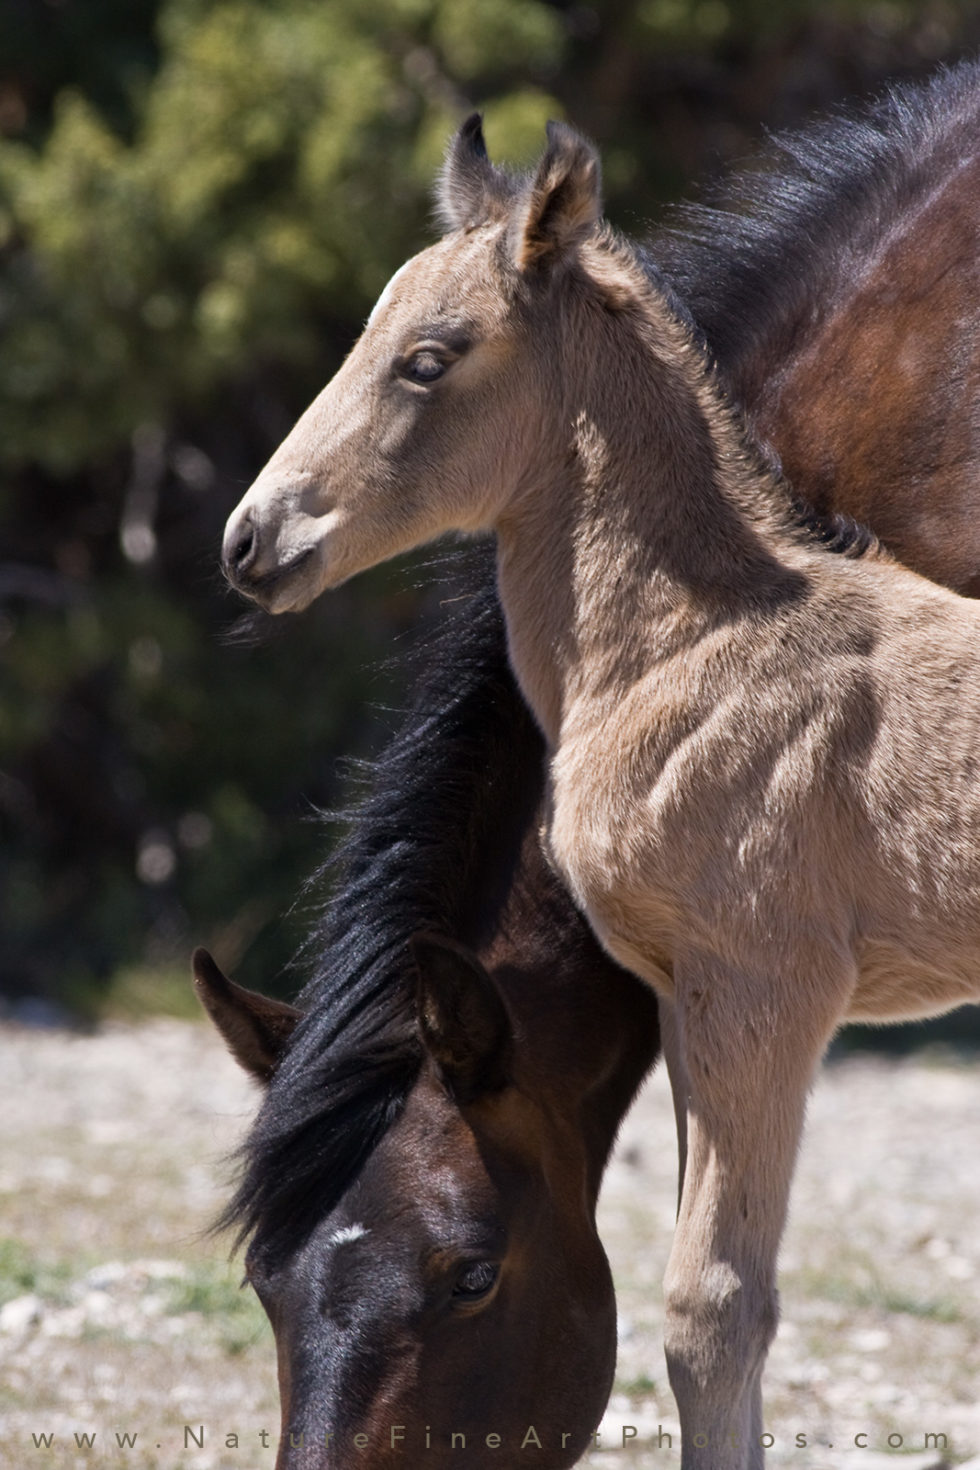 buckskin colored wild baby horse